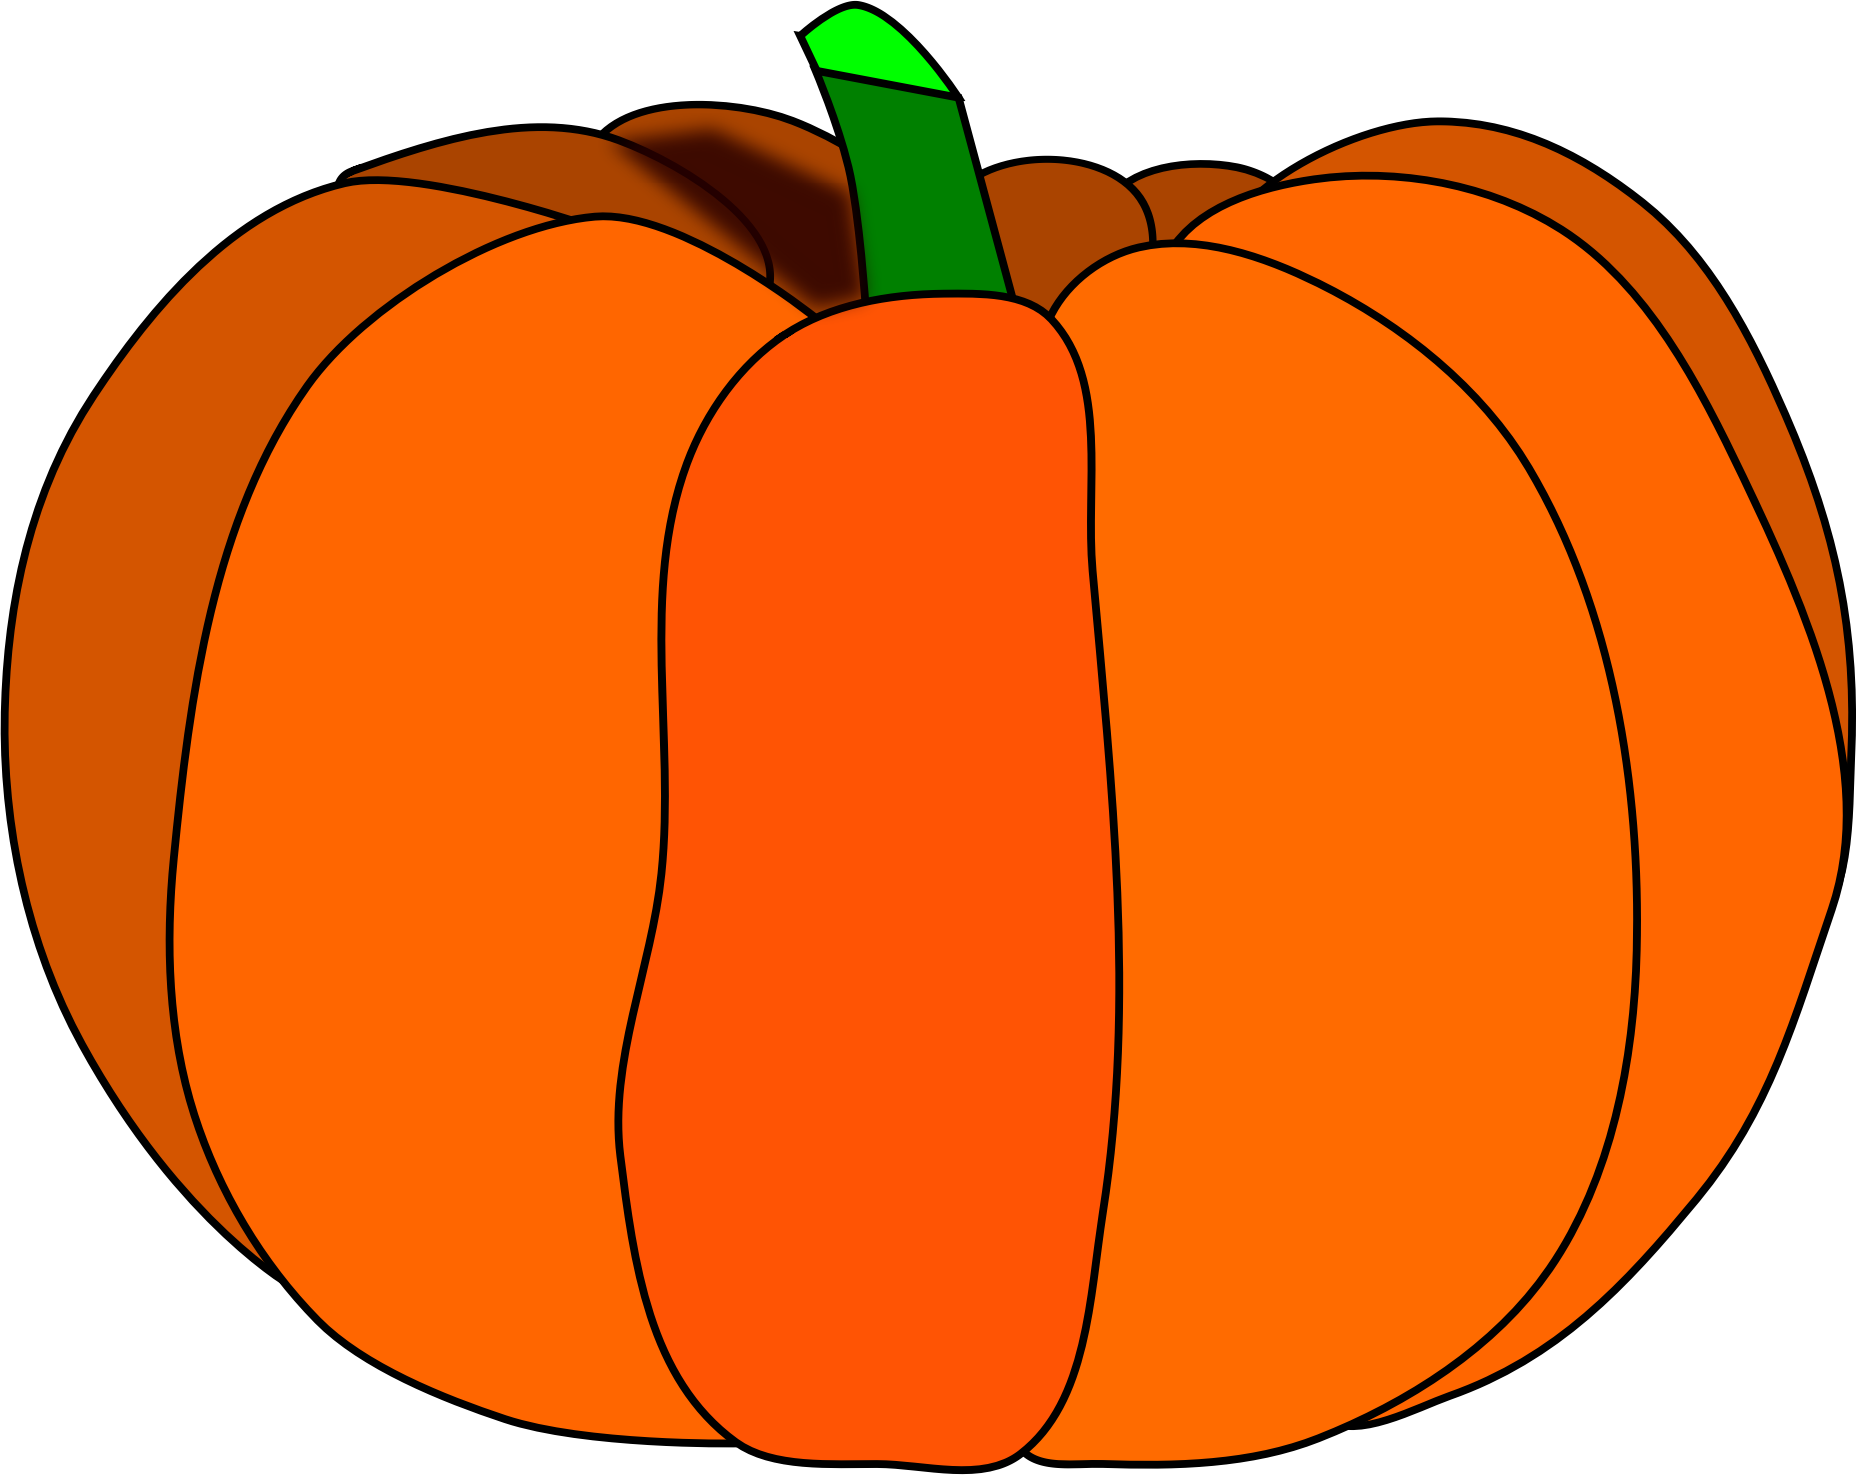 Clipart pumpkin png image free stock Vegetable pumkin clipart, explore pictures image free stock